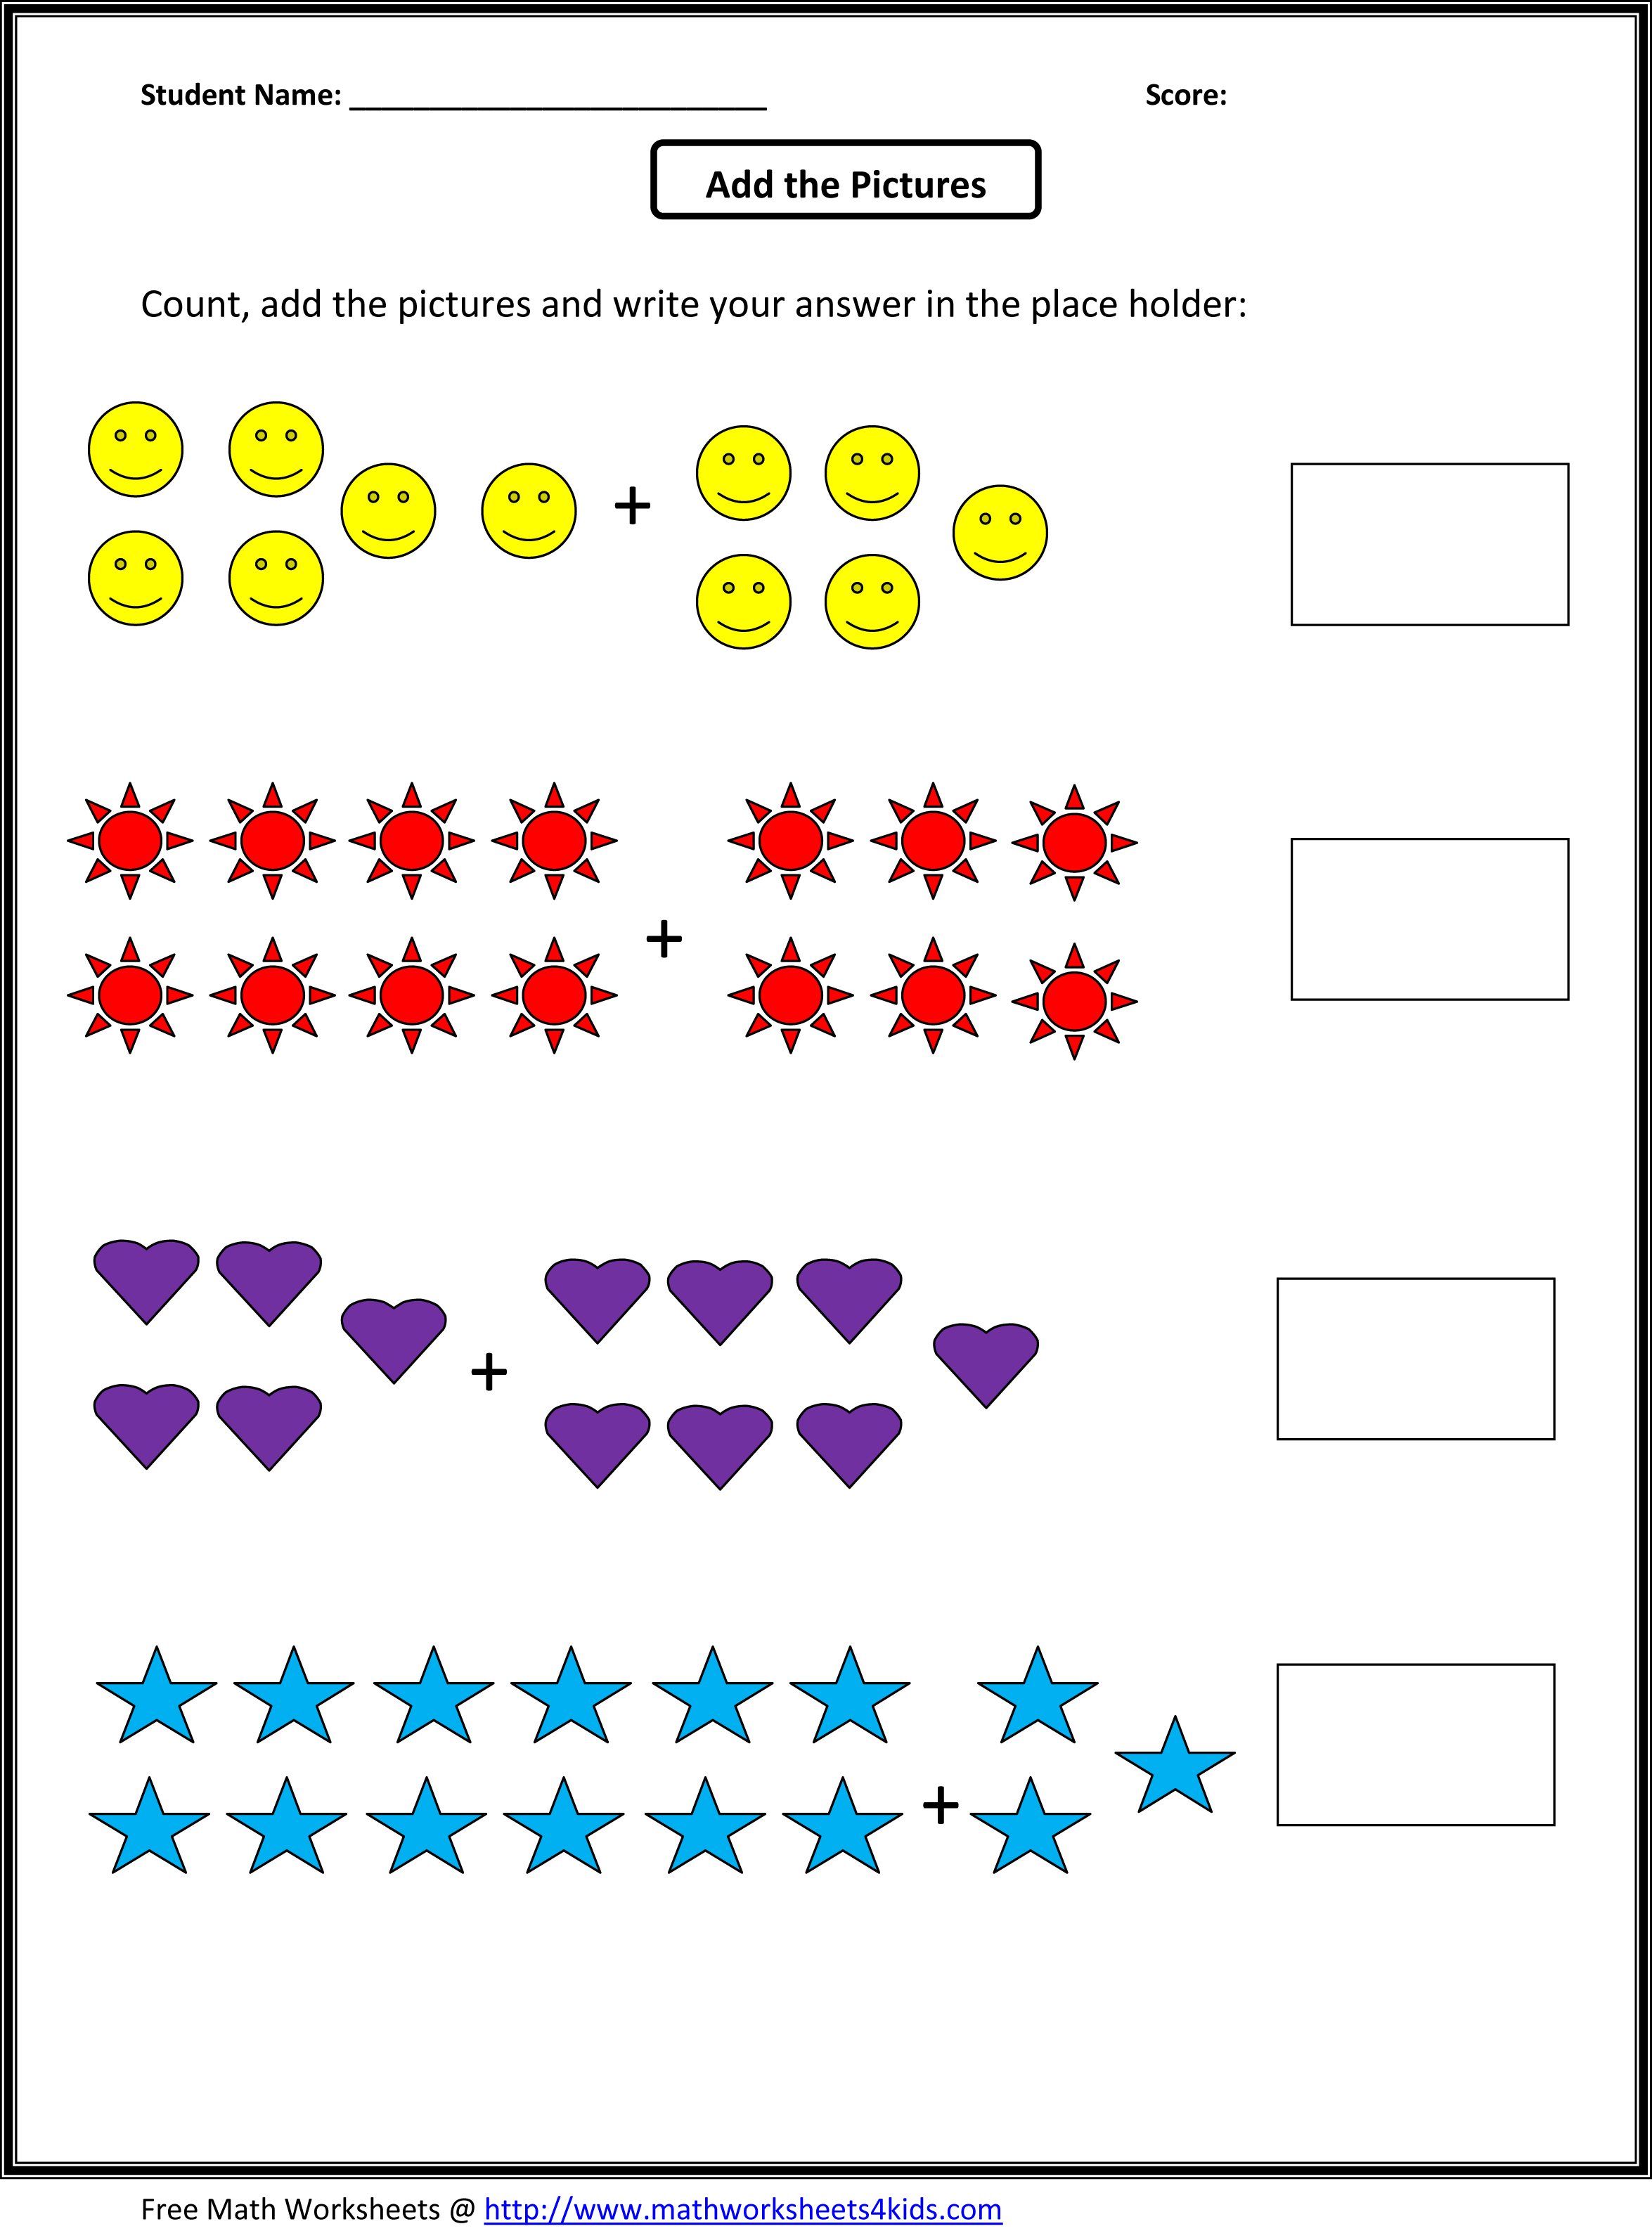 Weirdmailus  Prepossessing Grade  Maths Worksheet  Reocurent With Remarkable Math Worksheets For St Grade Free  Reocurent With Adorable Baseball Math Worksheets Also Atomic Structure Worksheets In Addition Graphing Review Worksheet And Linear Systems Worksheet As Well As Shapes And Colors Worksheets Additionally Mathcounts Worksheets From Reocurentcom With Weirdmailus  Remarkable Grade  Maths Worksheet  Reocurent With Adorable Math Worksheets For St Grade Free  Reocurent And Prepossessing Baseball Math Worksheets Also Atomic Structure Worksheets In Addition Graphing Review Worksheet From Reocurentcom